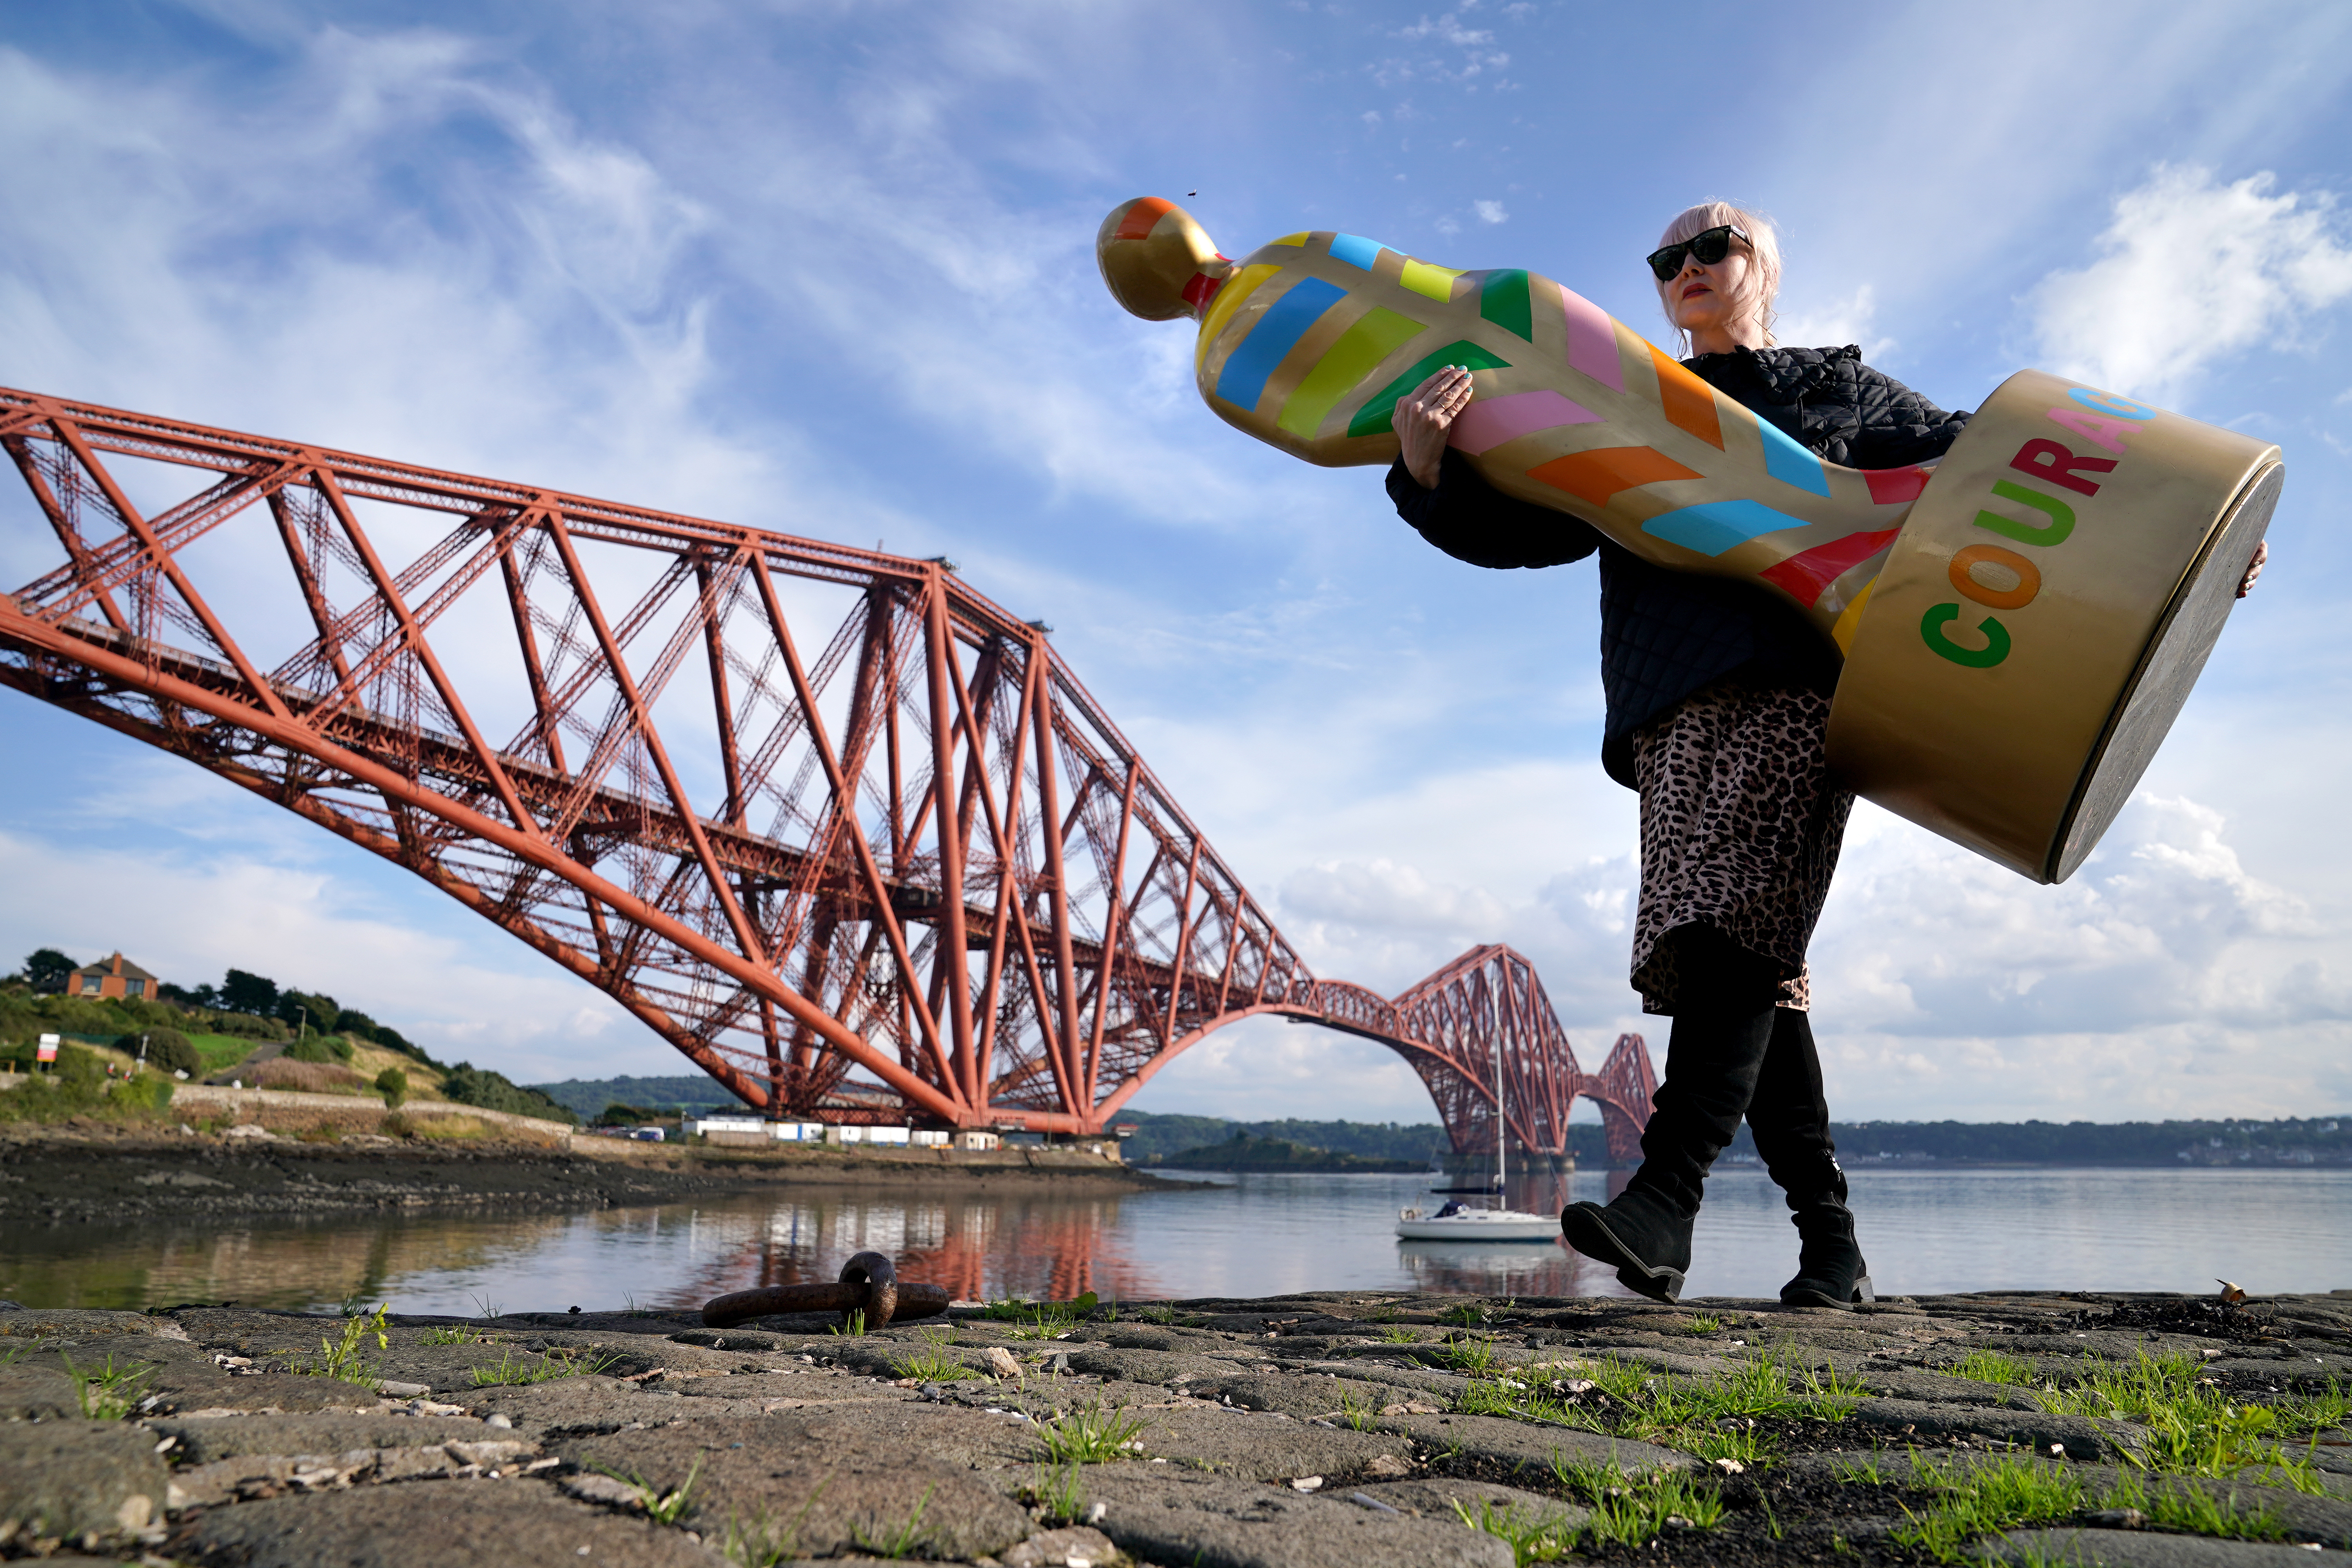 <p>Fiona McGarva holds one of the sculptures from the art installation Gratitude at The Forth Bridge at North Queensferry, ahead of going on display just outside of Edinburgh at Newhailes House and Gardens from Friday 17th September. The public art installation pays tribute to NHS staff and all key workers for their ongoing courage and dedication during the Covid-19 pandemic. Picture date: Wednesday September 15, 2021.</p>